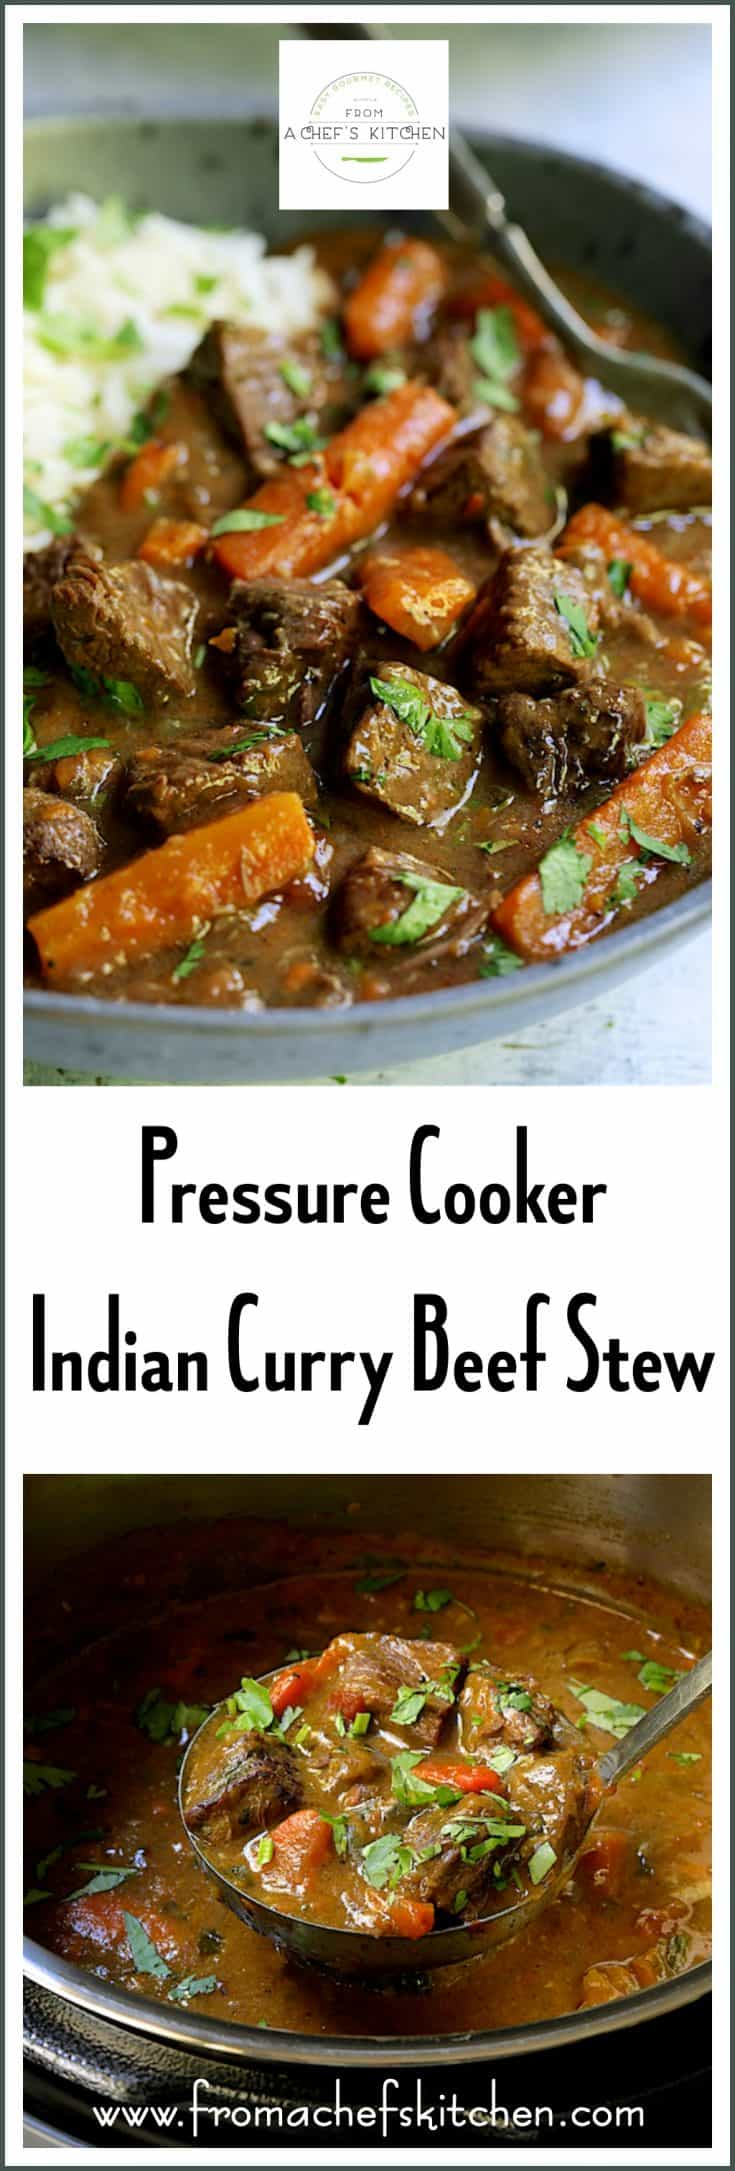 #Ad #Sponsored - Pressure Cooker Indian Curry Beef Stew is the perfect dish to warm you on a chilly fall or winter night! It tastes exotic yet it's so easy! #Souspreme #pressurecooker #pressurecooking #pressurecookerrecipes #Indianfood #Indiancuisine #beef #beefstew #Indianbeefstew #Indianbeefcurry #beefcurry